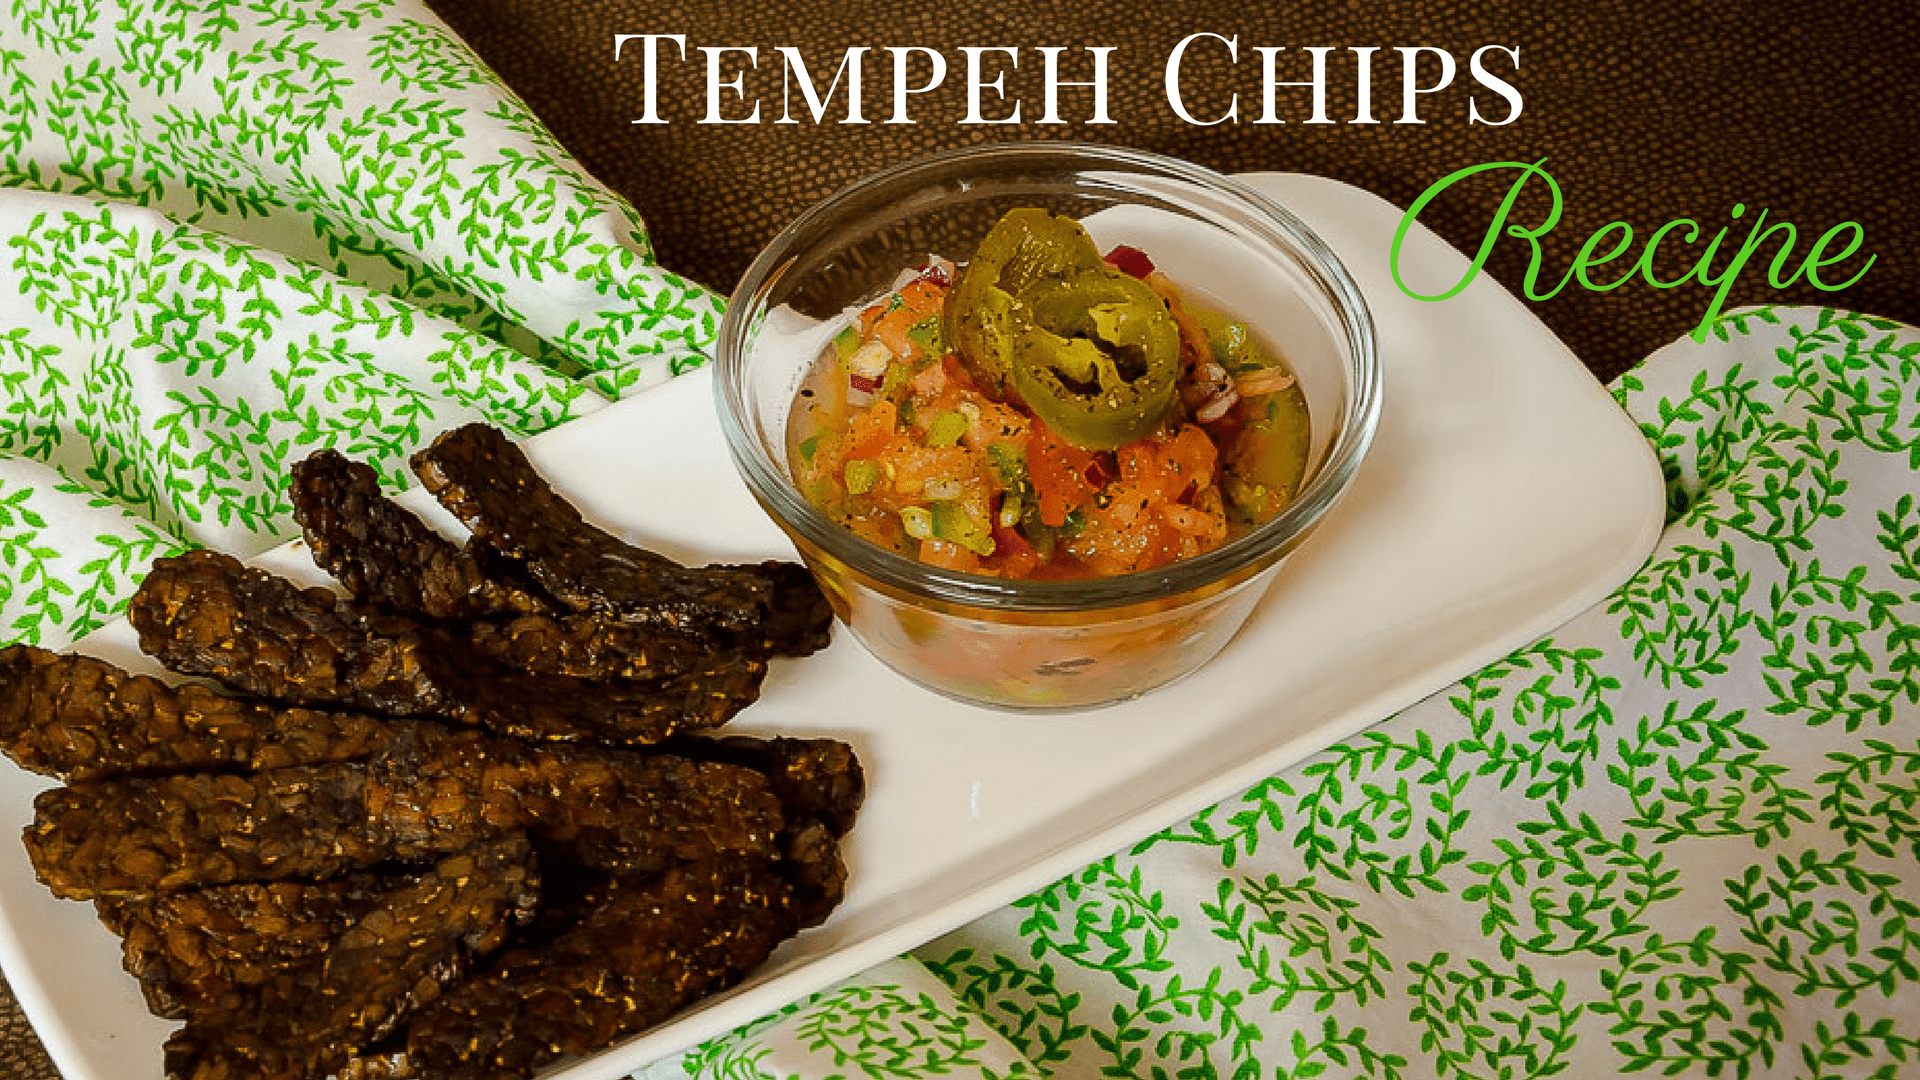 Tempeh Chips Recipe Cover